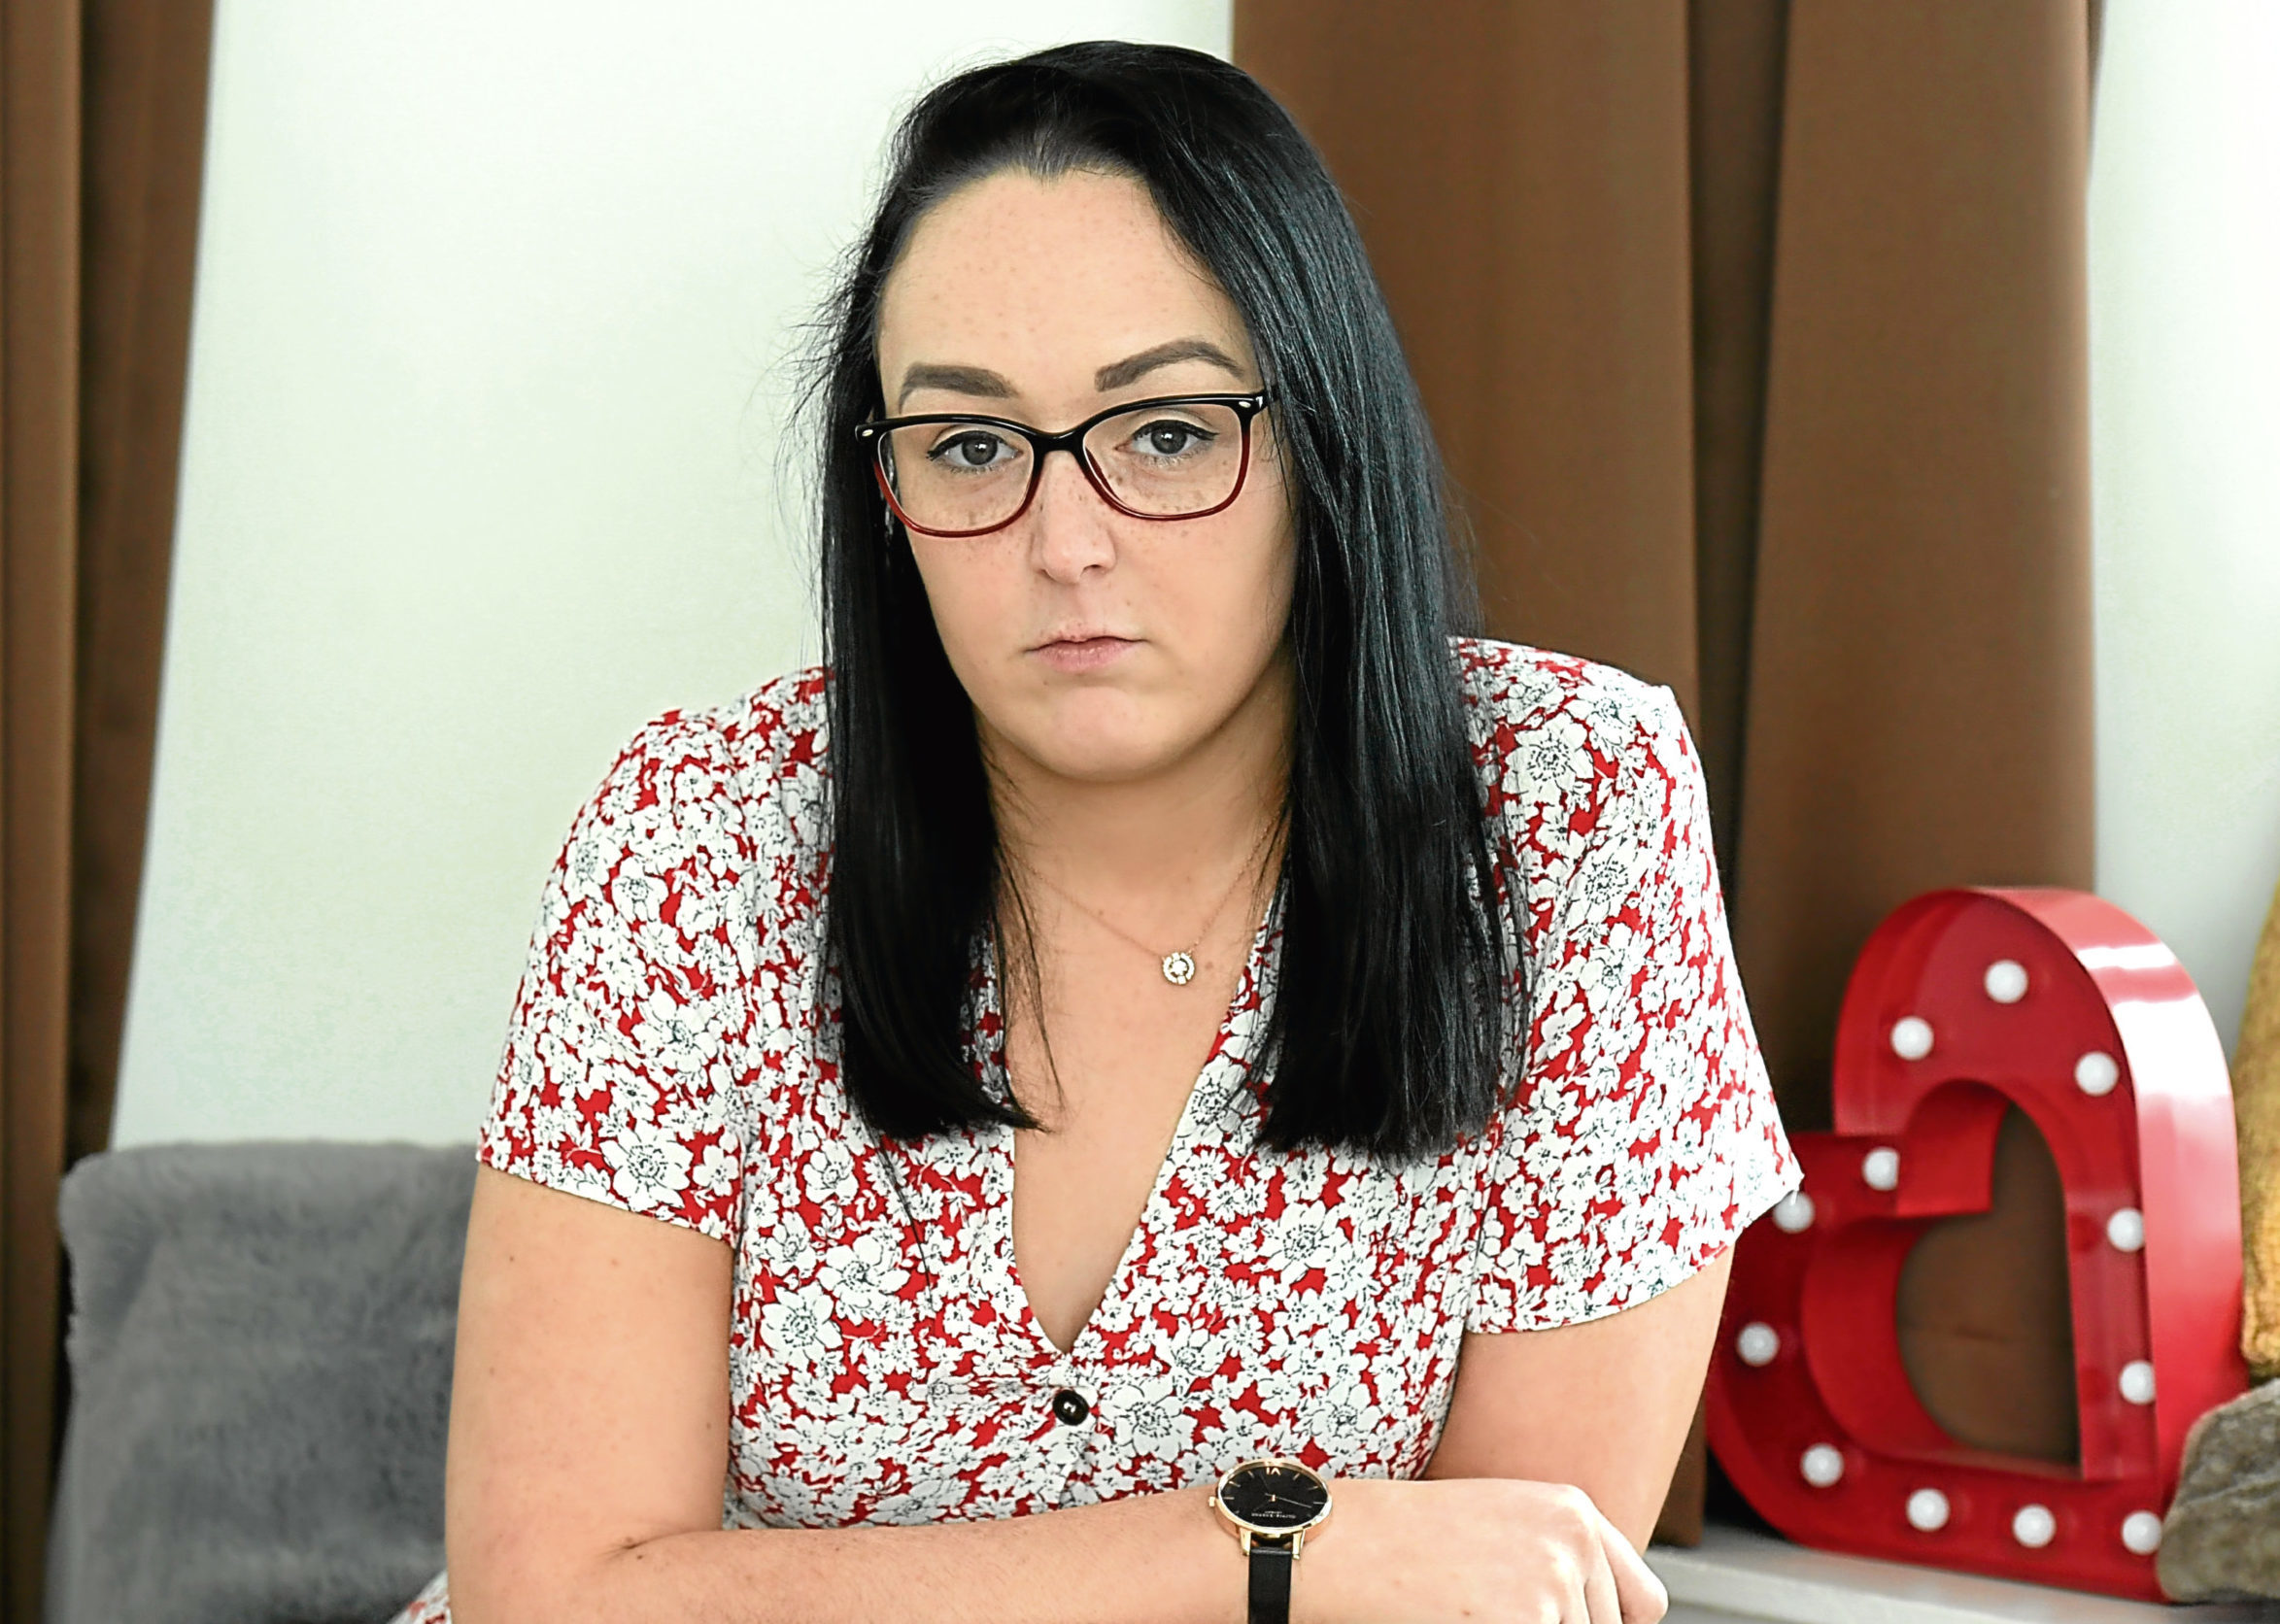 Katie Johnston feels she can move on after her rapist was sentenced.